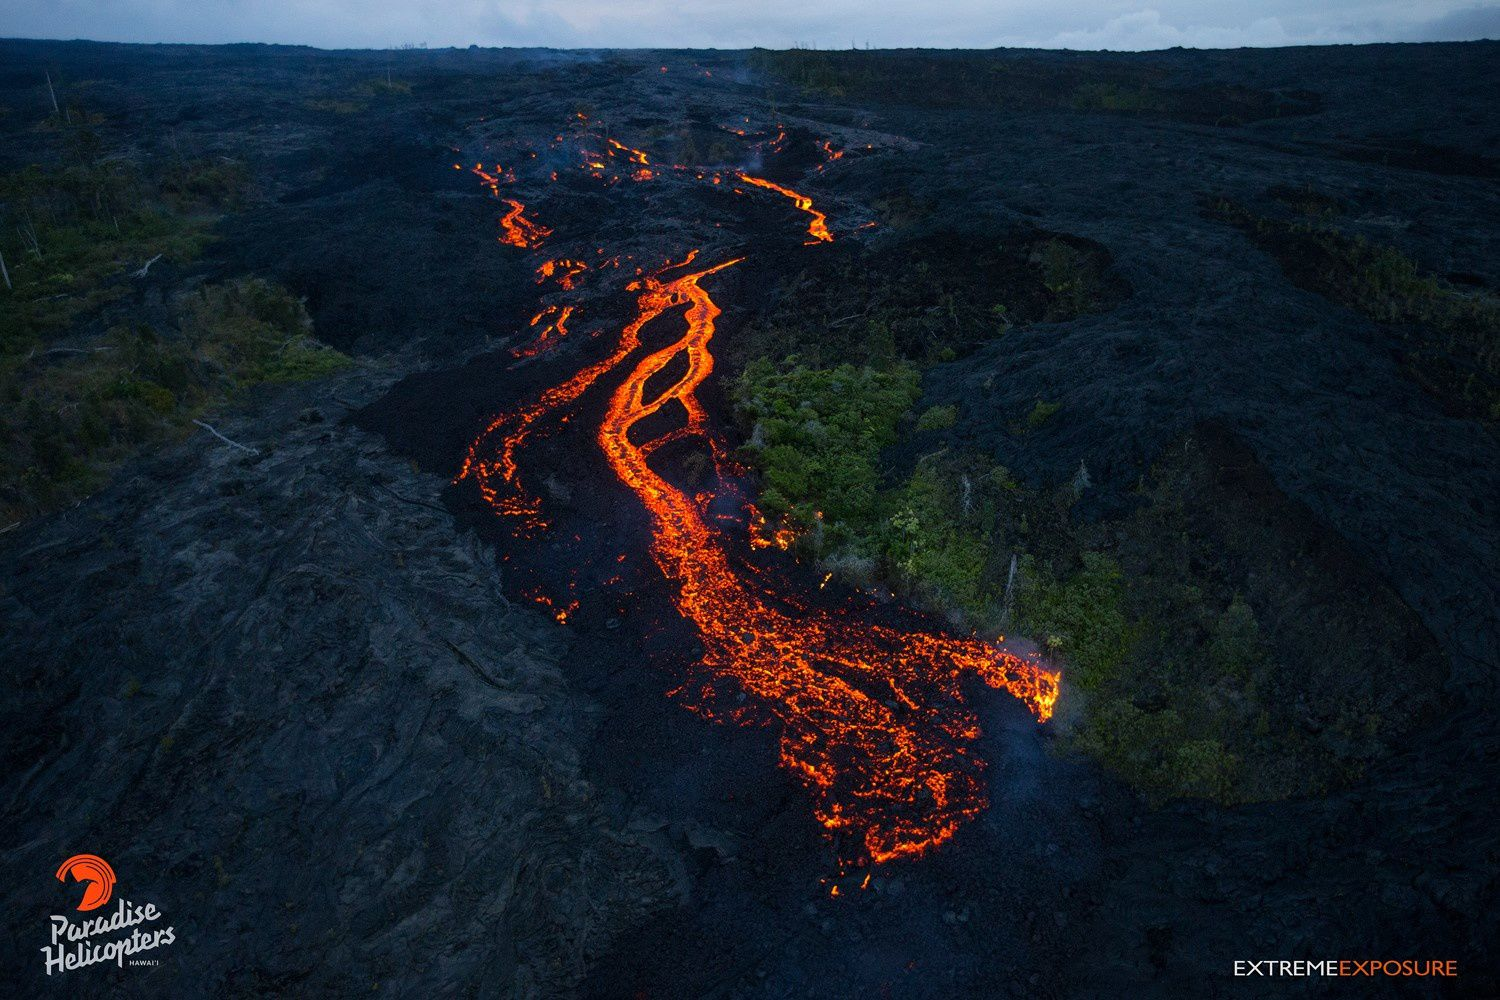 Lava flow channeled from the Pu'u O'o on the Pali Pūlama 06/28/2016 - Picture Paradise Helic.